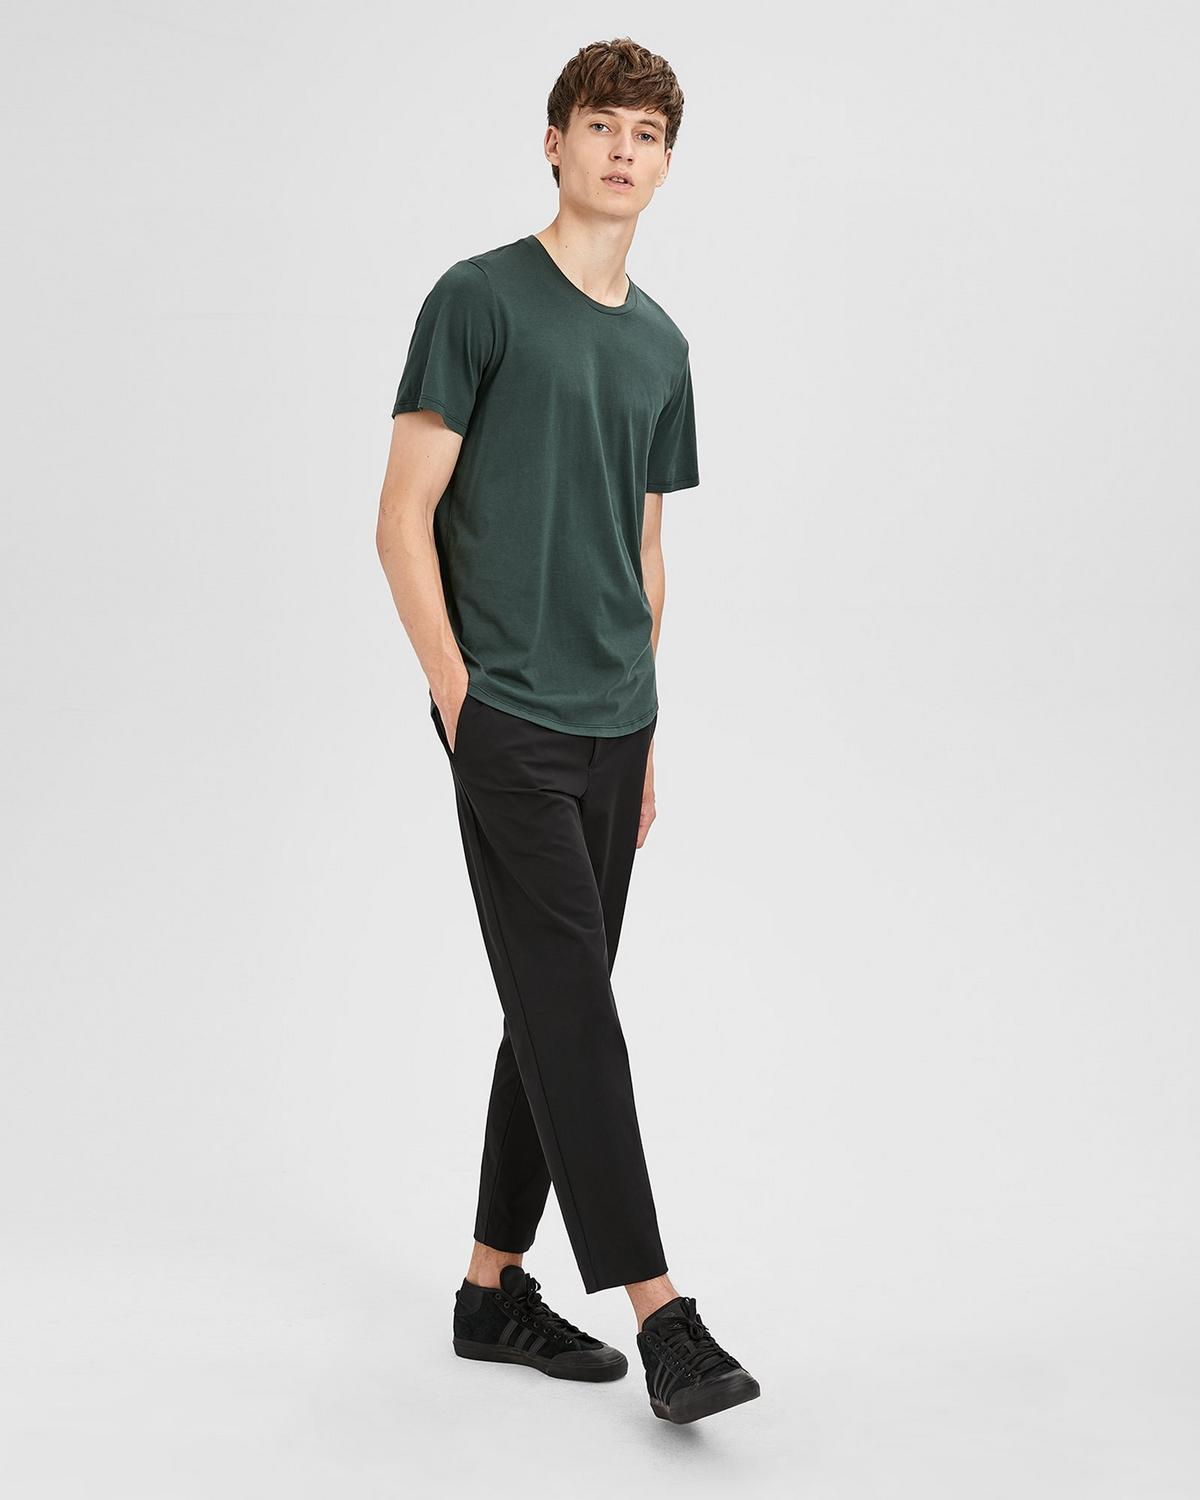 Technical Wool Semi Tech Pant